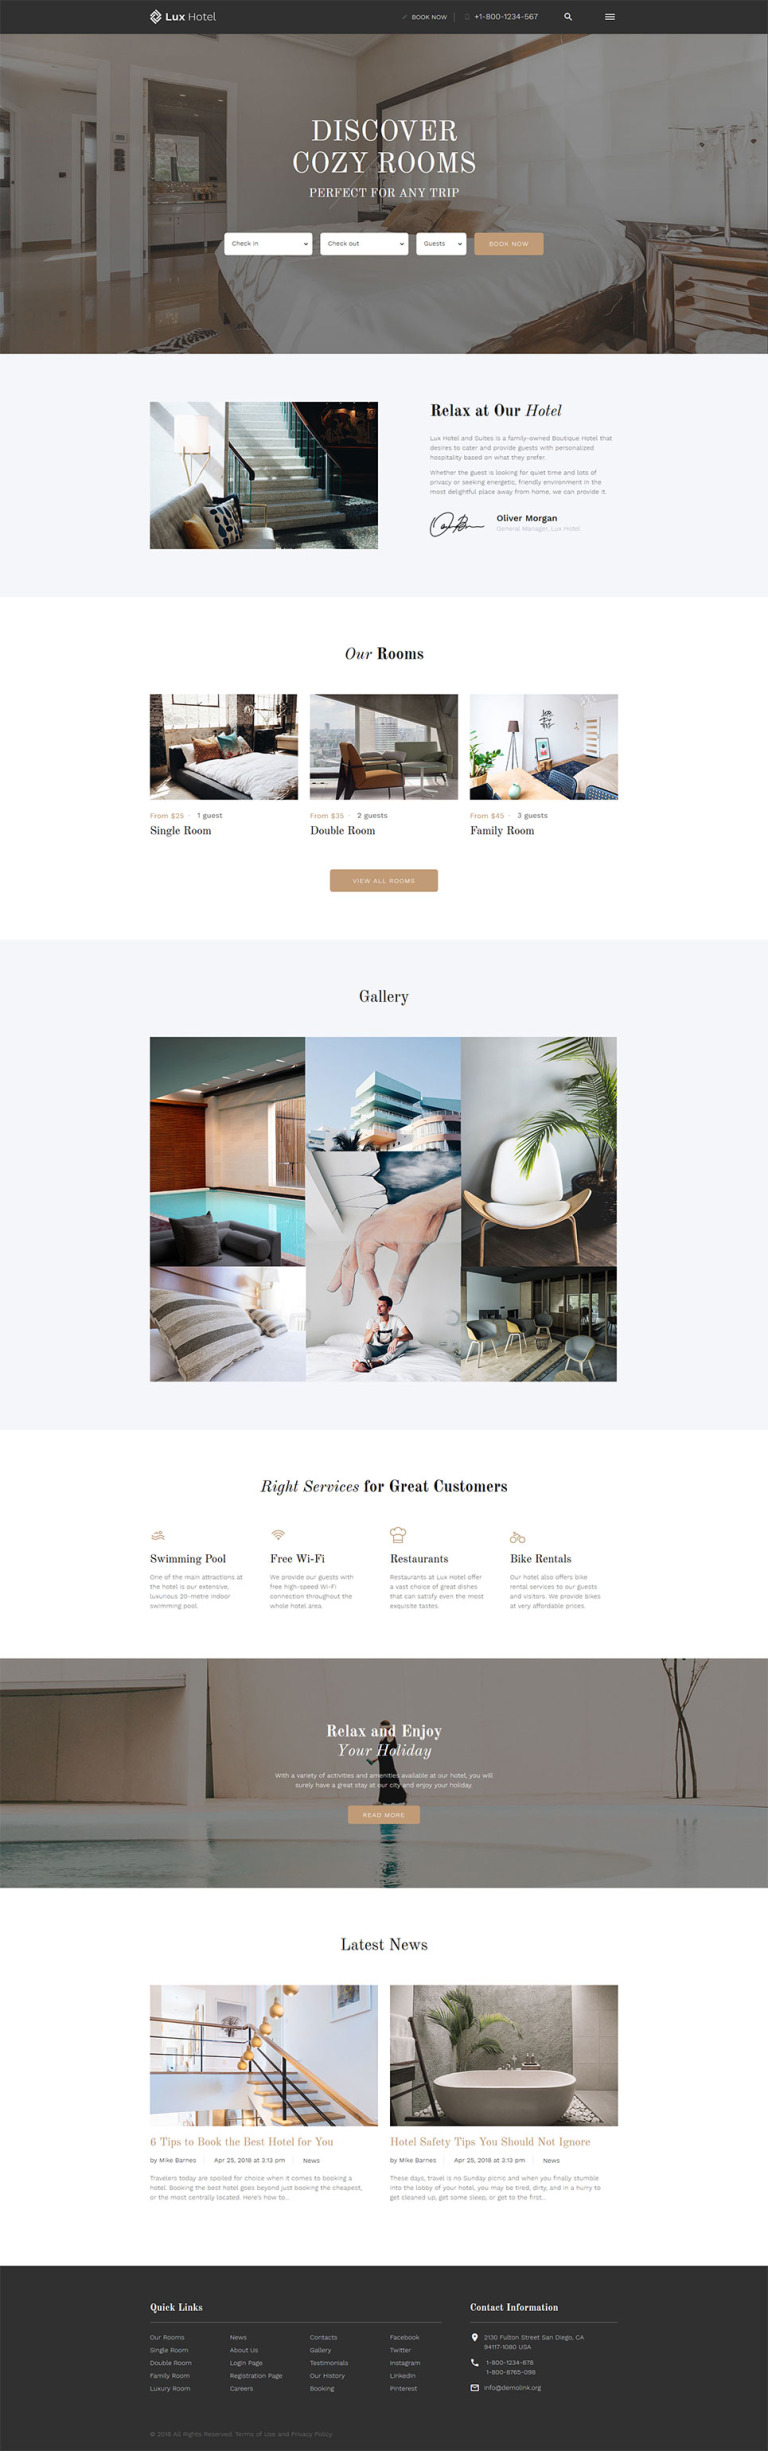 Hotel Booking Website Template New Screenshots BIG